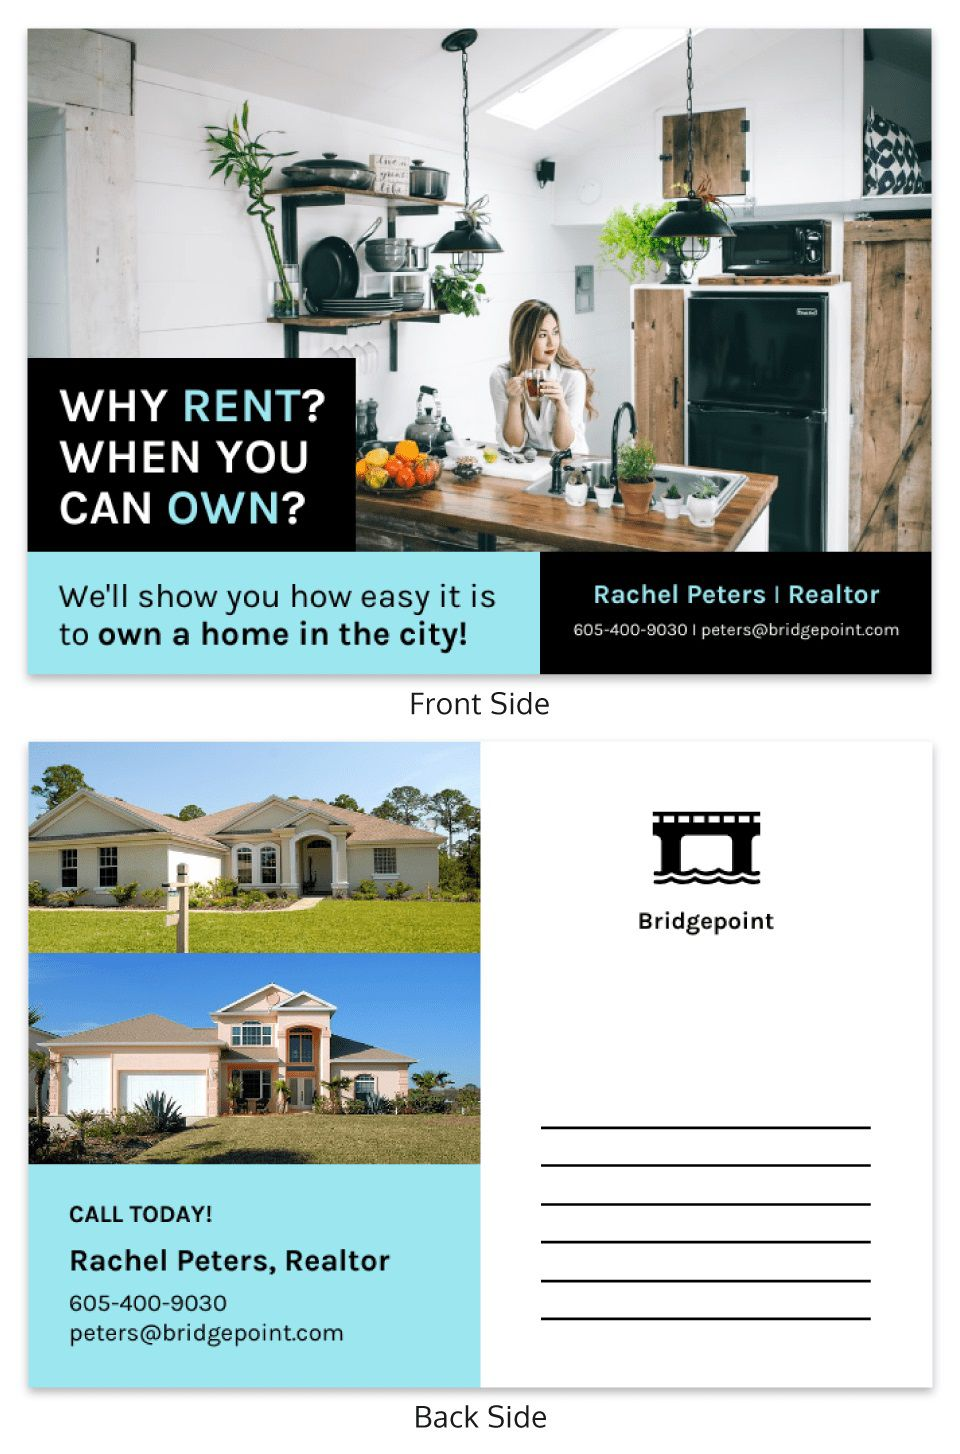 001 Fascinating Real Estate Postcard Template Design  Agent For Photoshop Investor